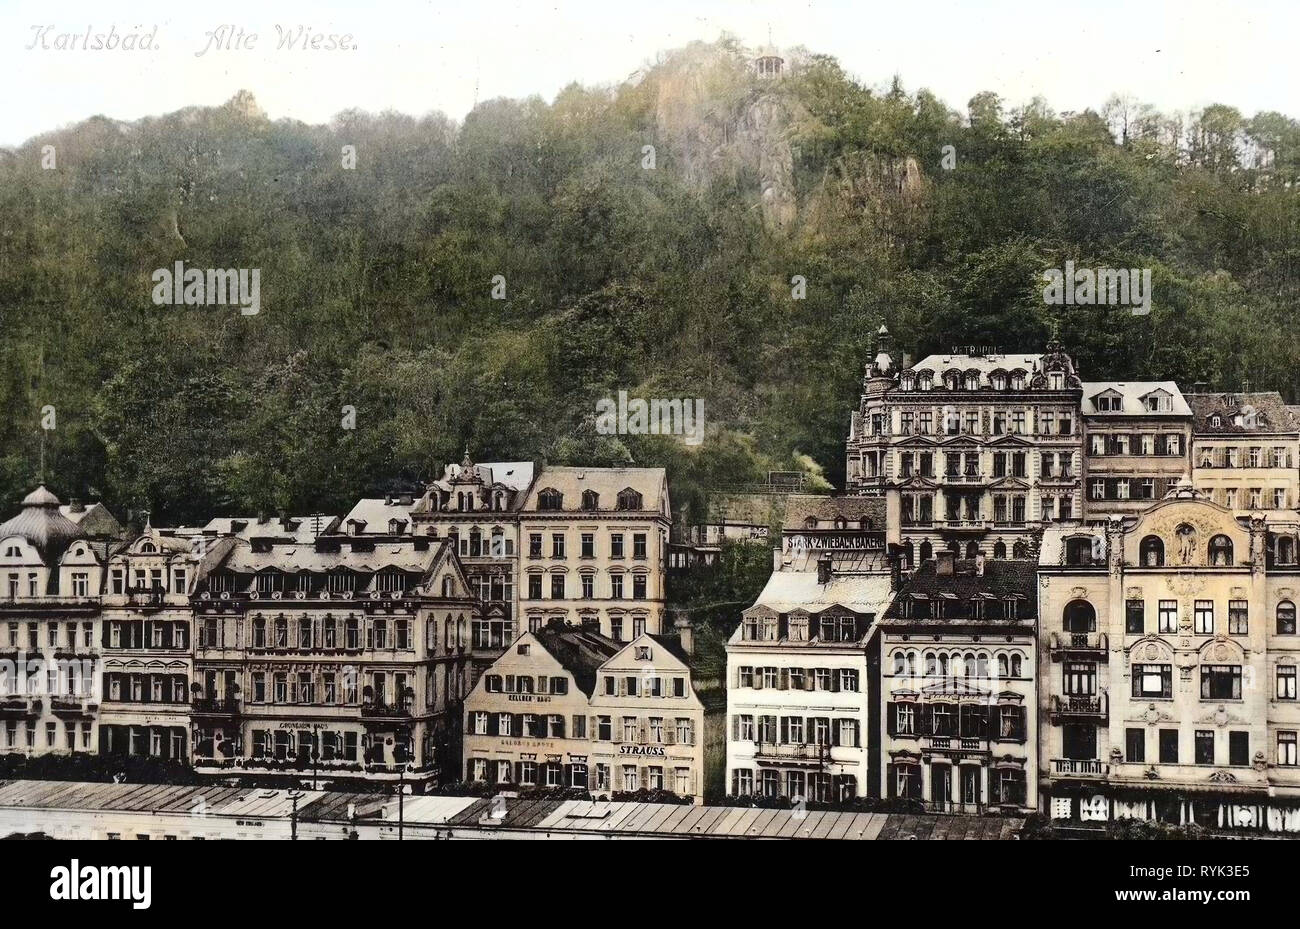 Buildings in Karlovy Vary, 1914, Karlovy Vary Region, Karlsbad, Alte Wiese, Czech Republic - Stock Image